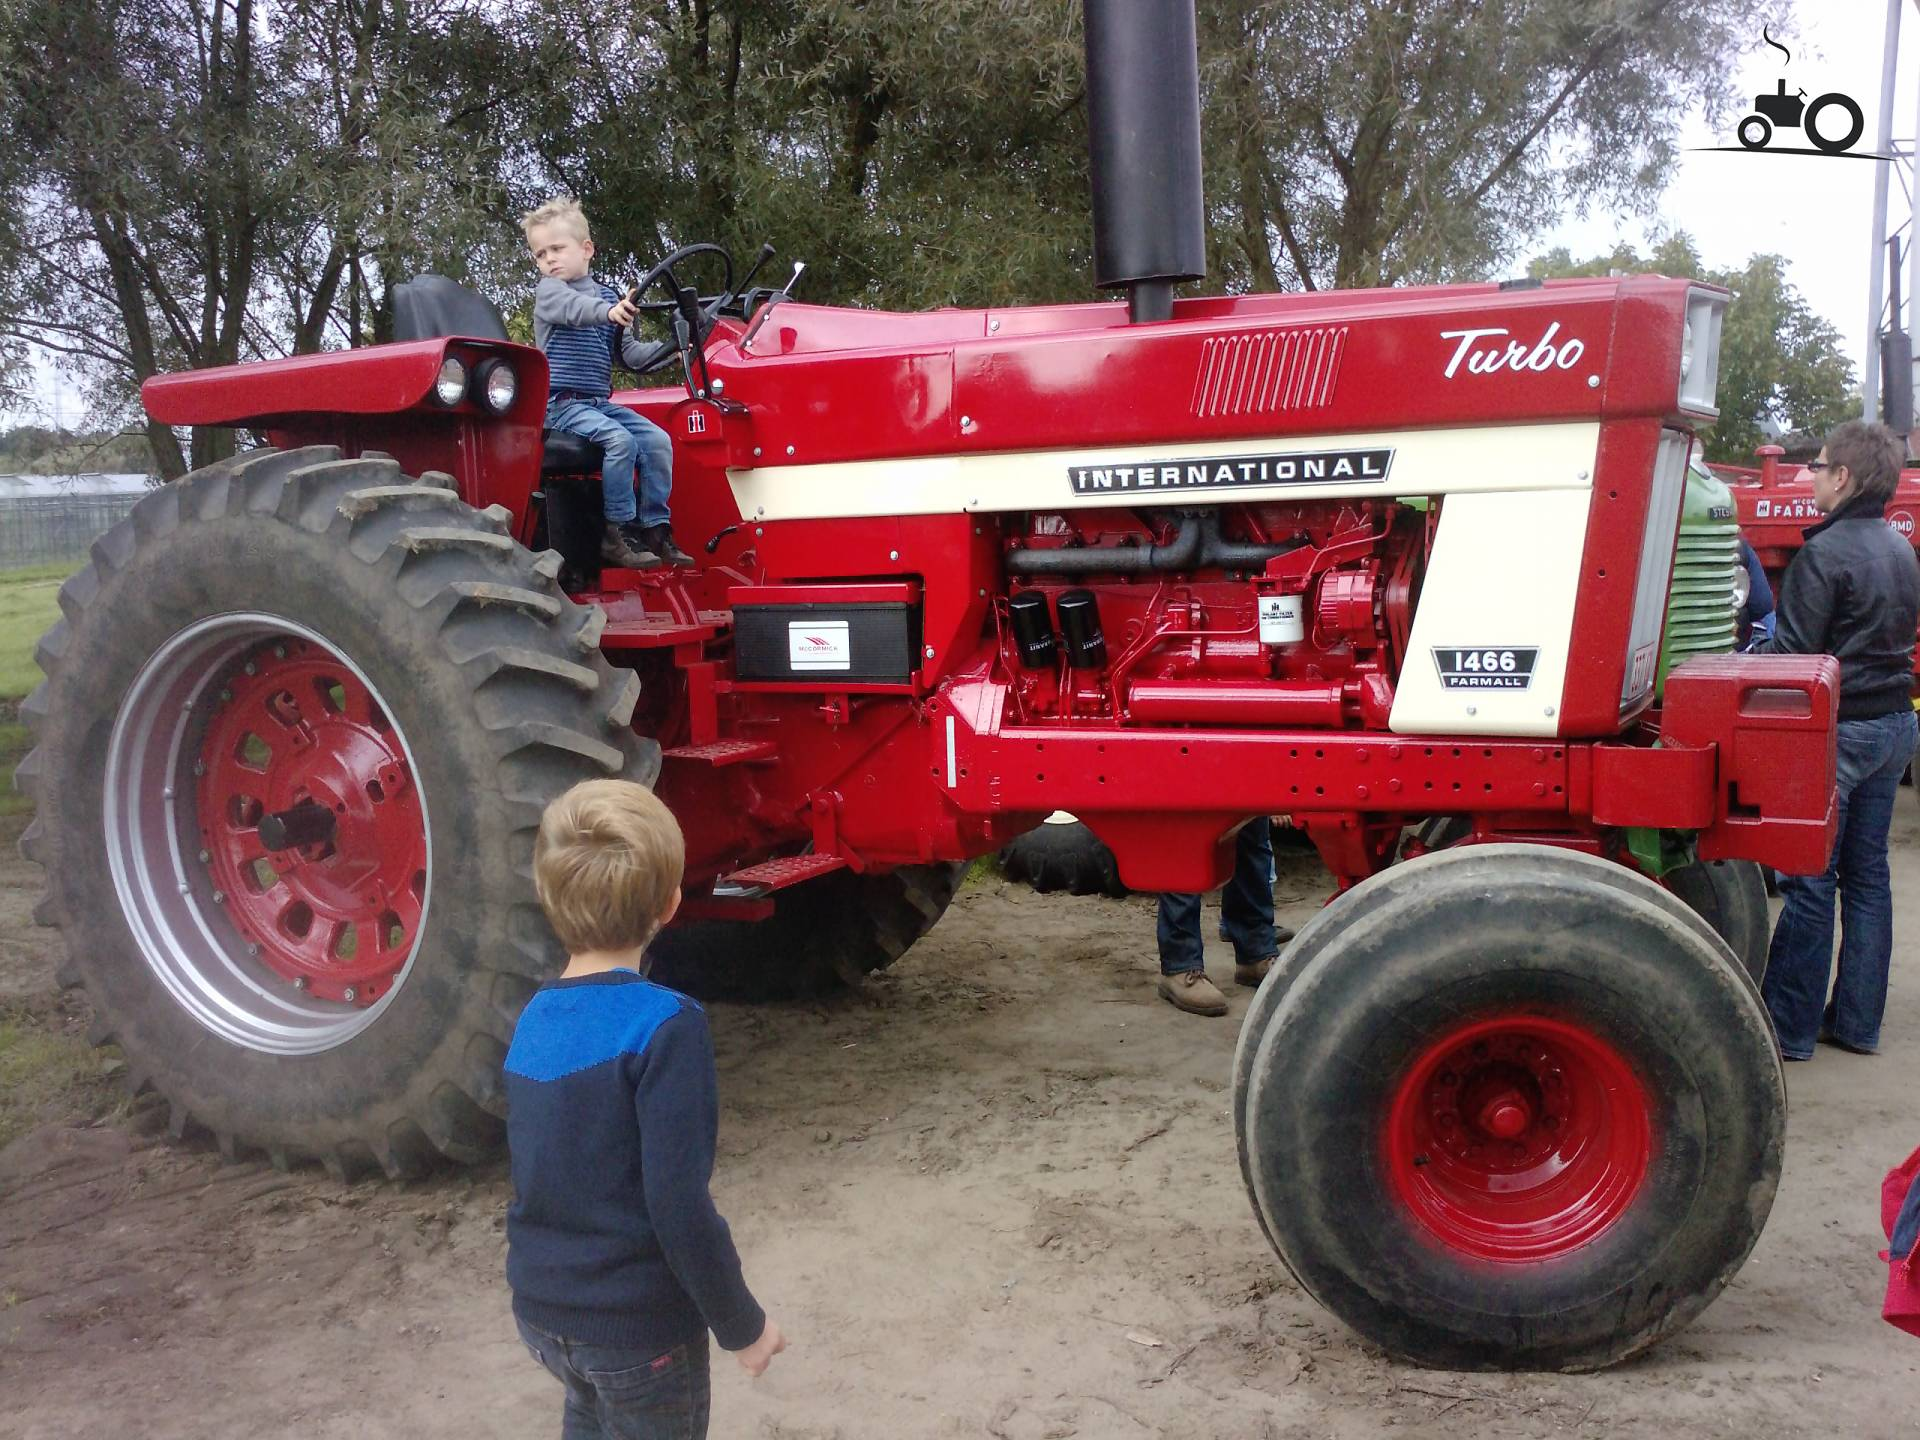 Tractor Turbo Cover : International specs and data everything about the